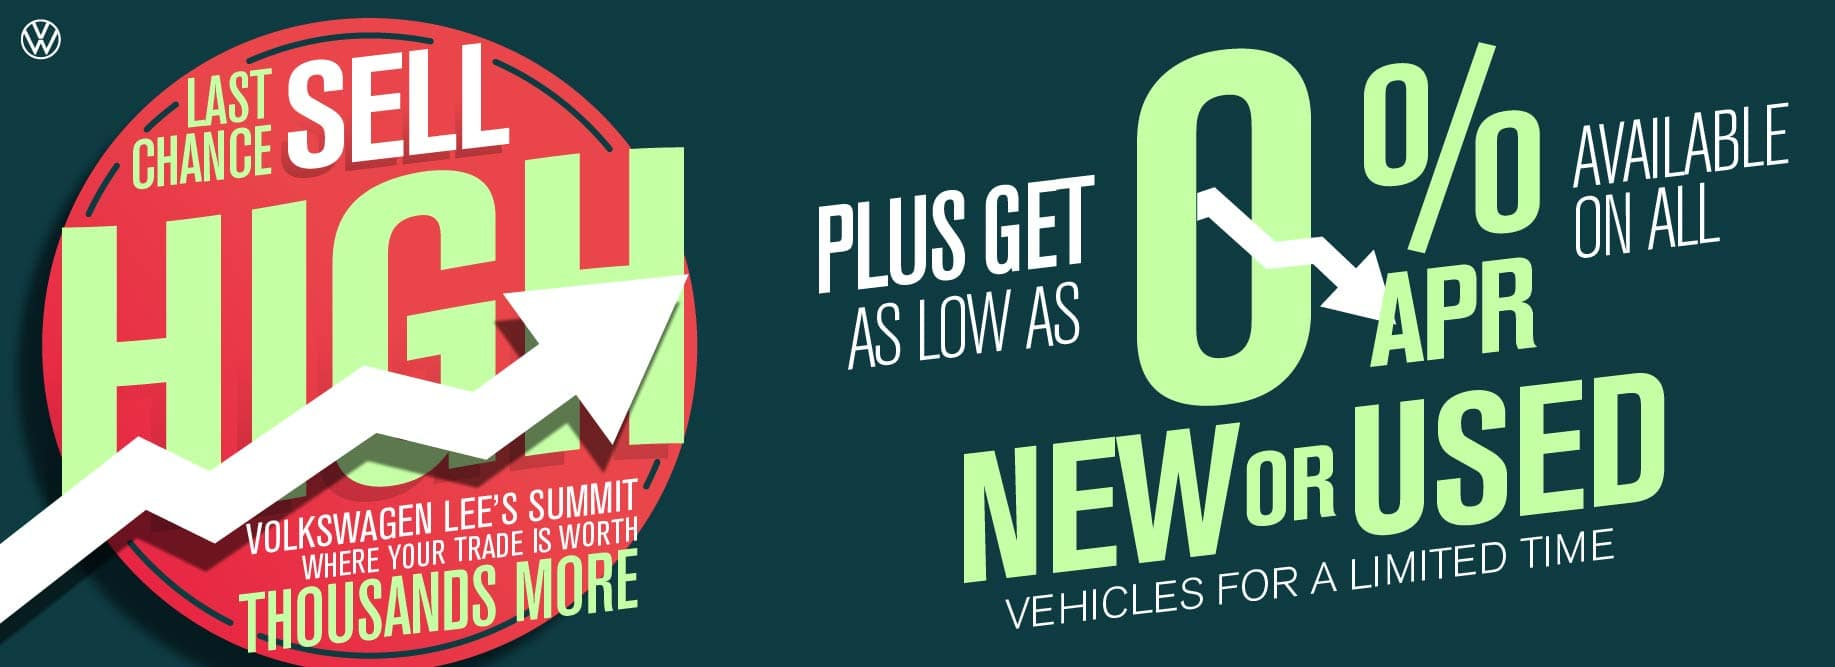 Your trade is worth more than ever - upgrade to a new or used car for as low as 0%